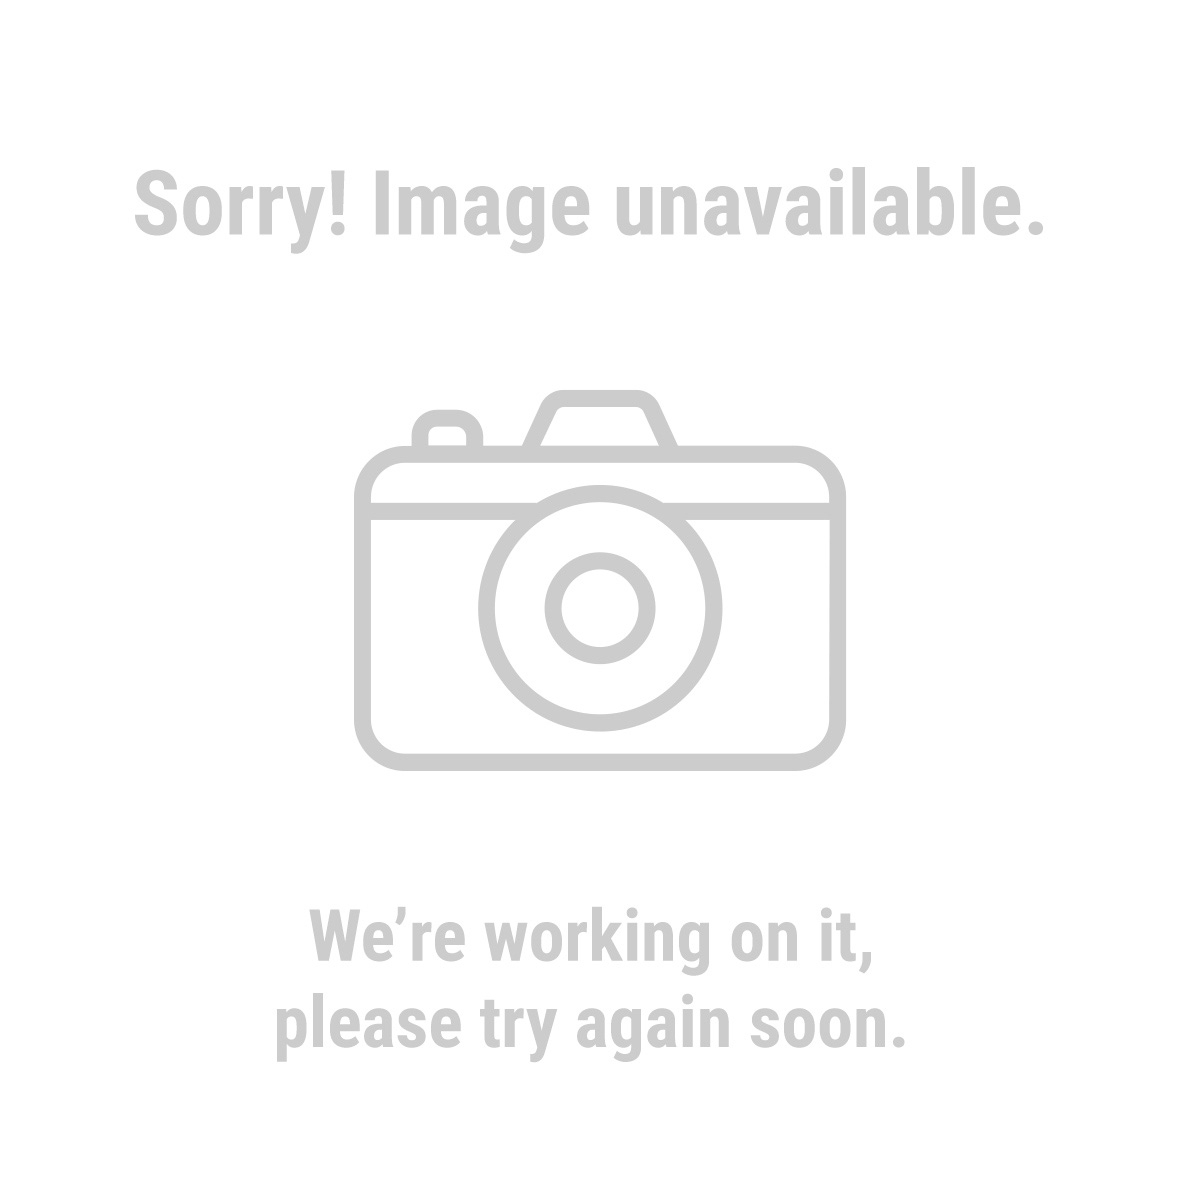 Chicago Electric Welding 95136 240 Volt Inverter Plasma Cutter with Digital Display